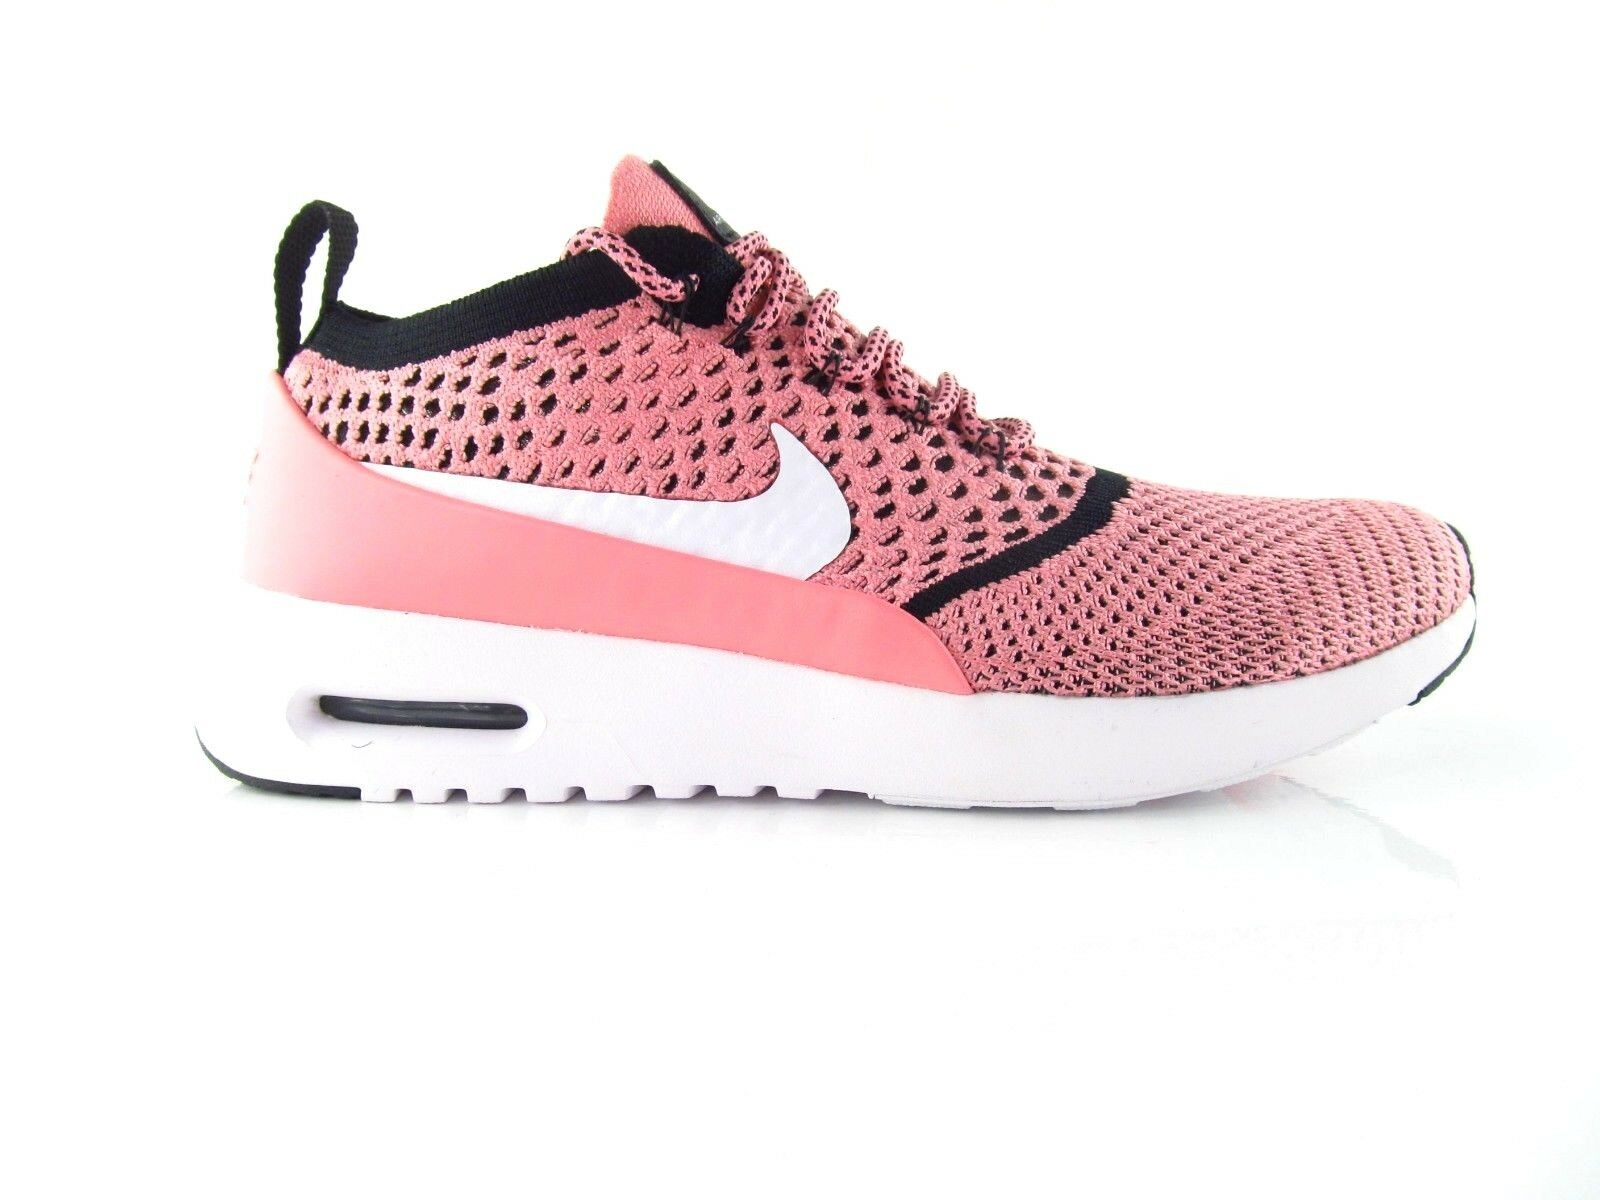 Nike Air Max Thea Ultra Flyknit Premium 90 Pink 37.5 Rosa UK_4 US_6.5 Eur 37.5 Pink 0a4c51